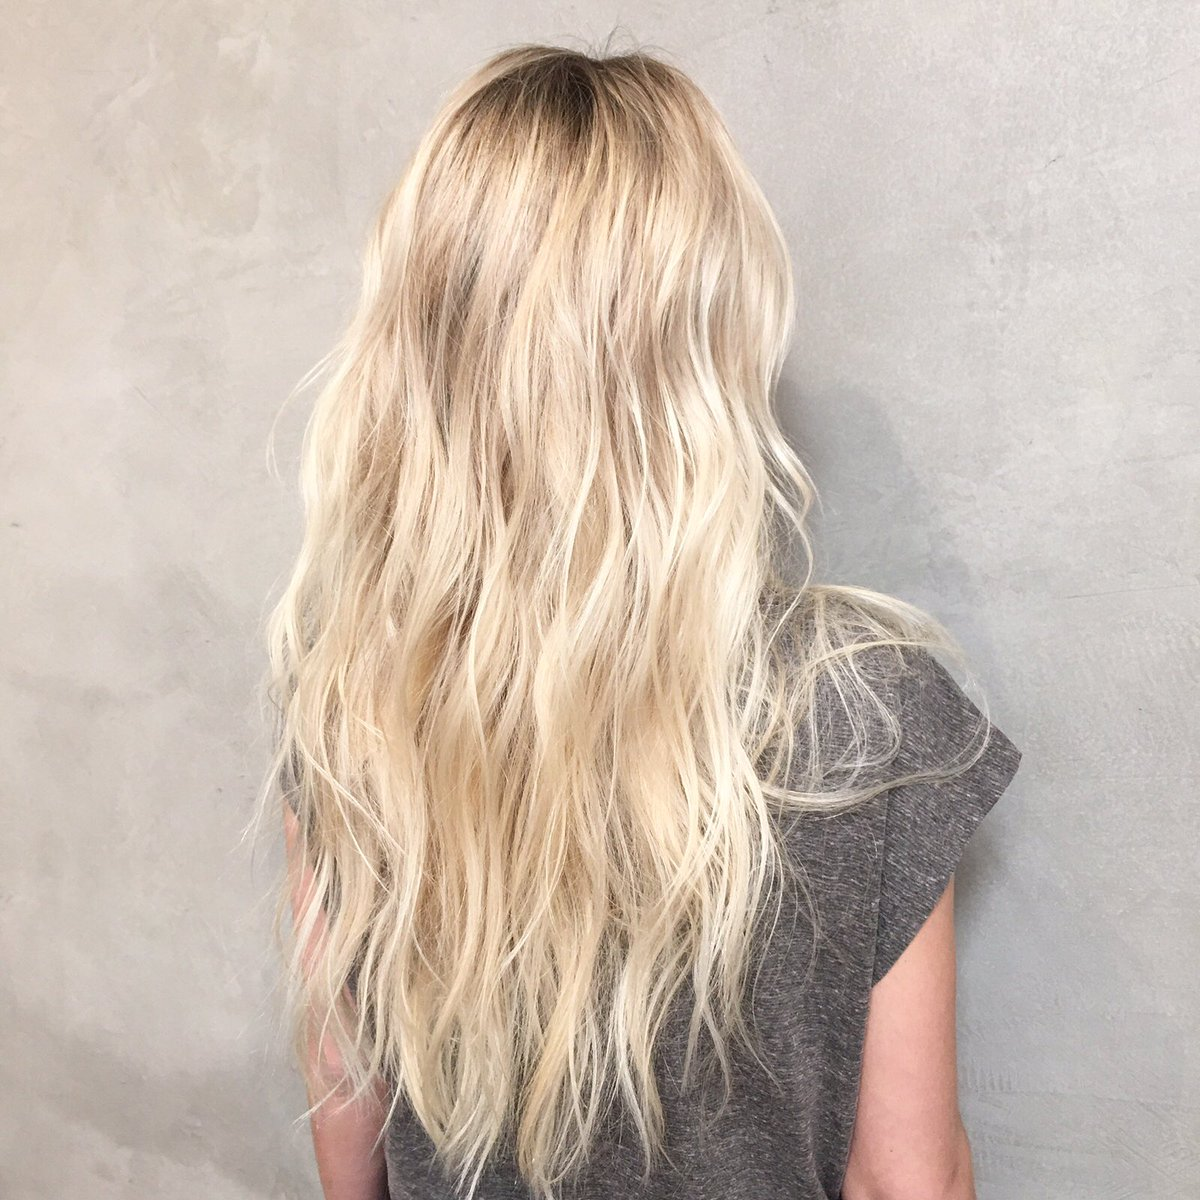 Alissa Violet On Twitter Quot New Hair It S An Icy White